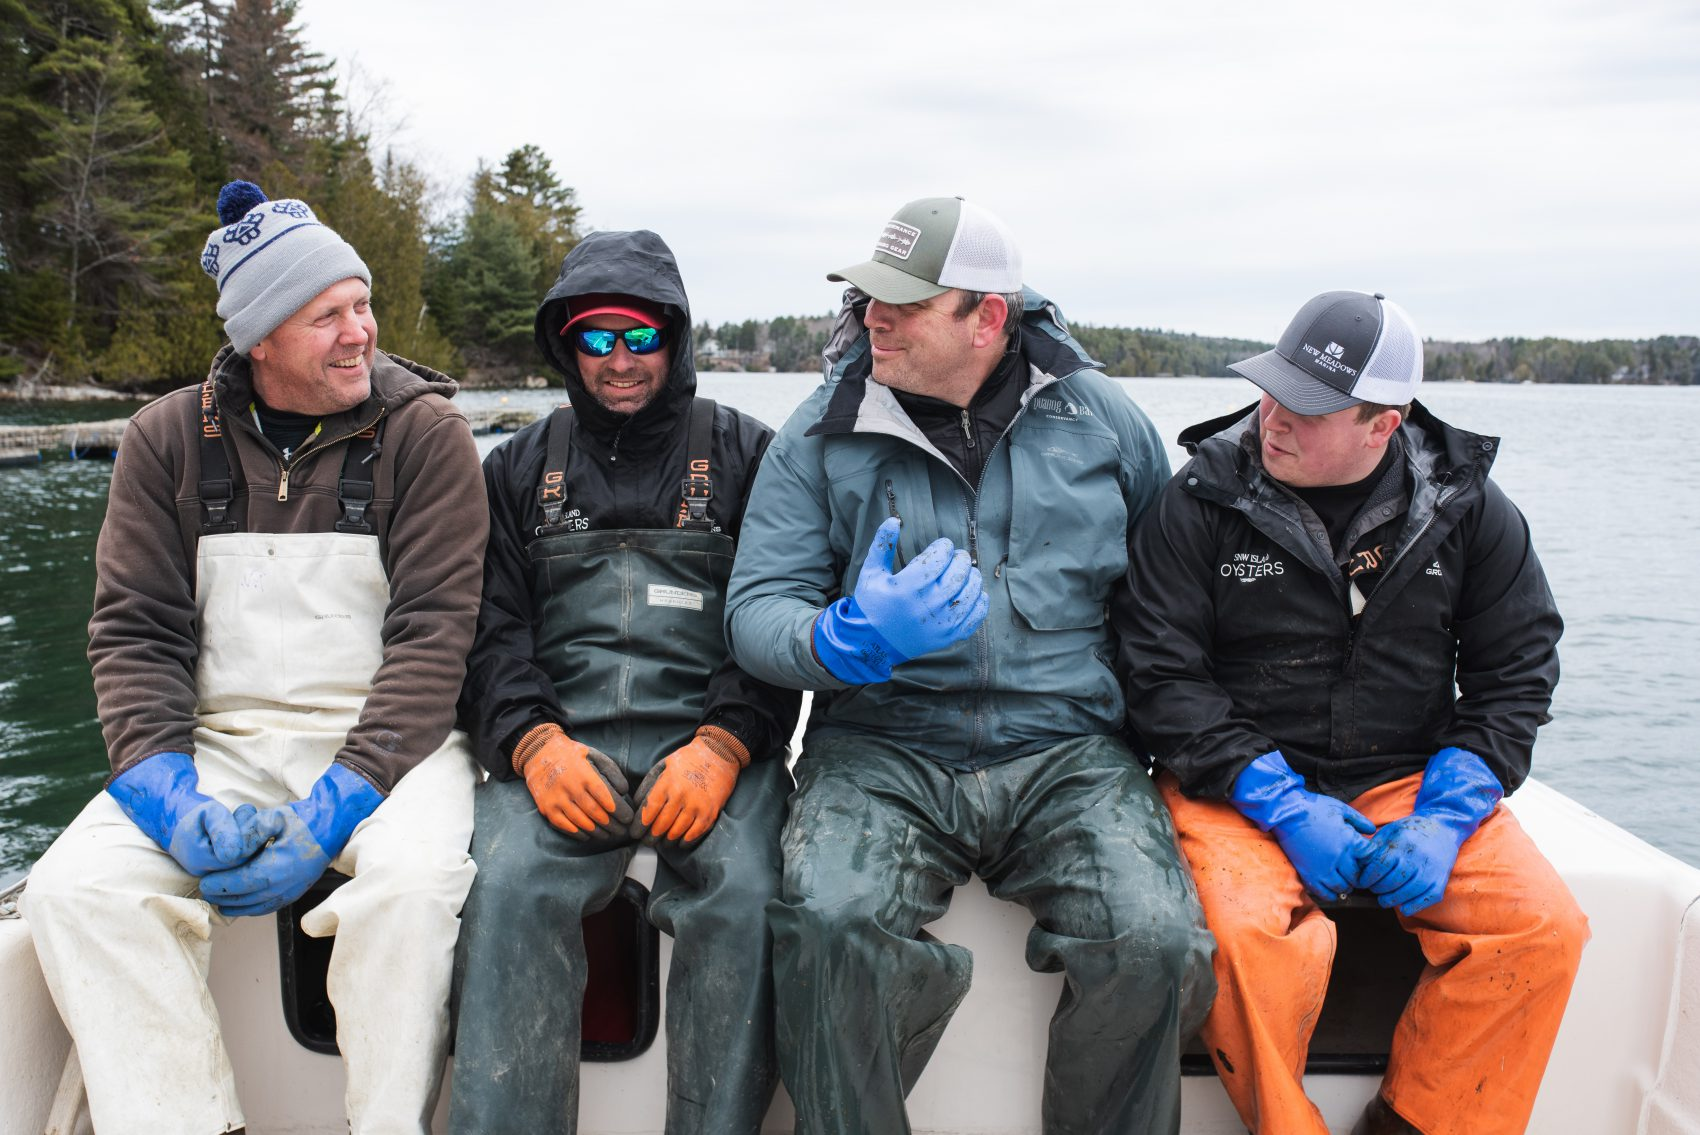 Peter, Donnie, Dave and Alec of Snow Island Oysters sit next to one another on the bow of their boat.